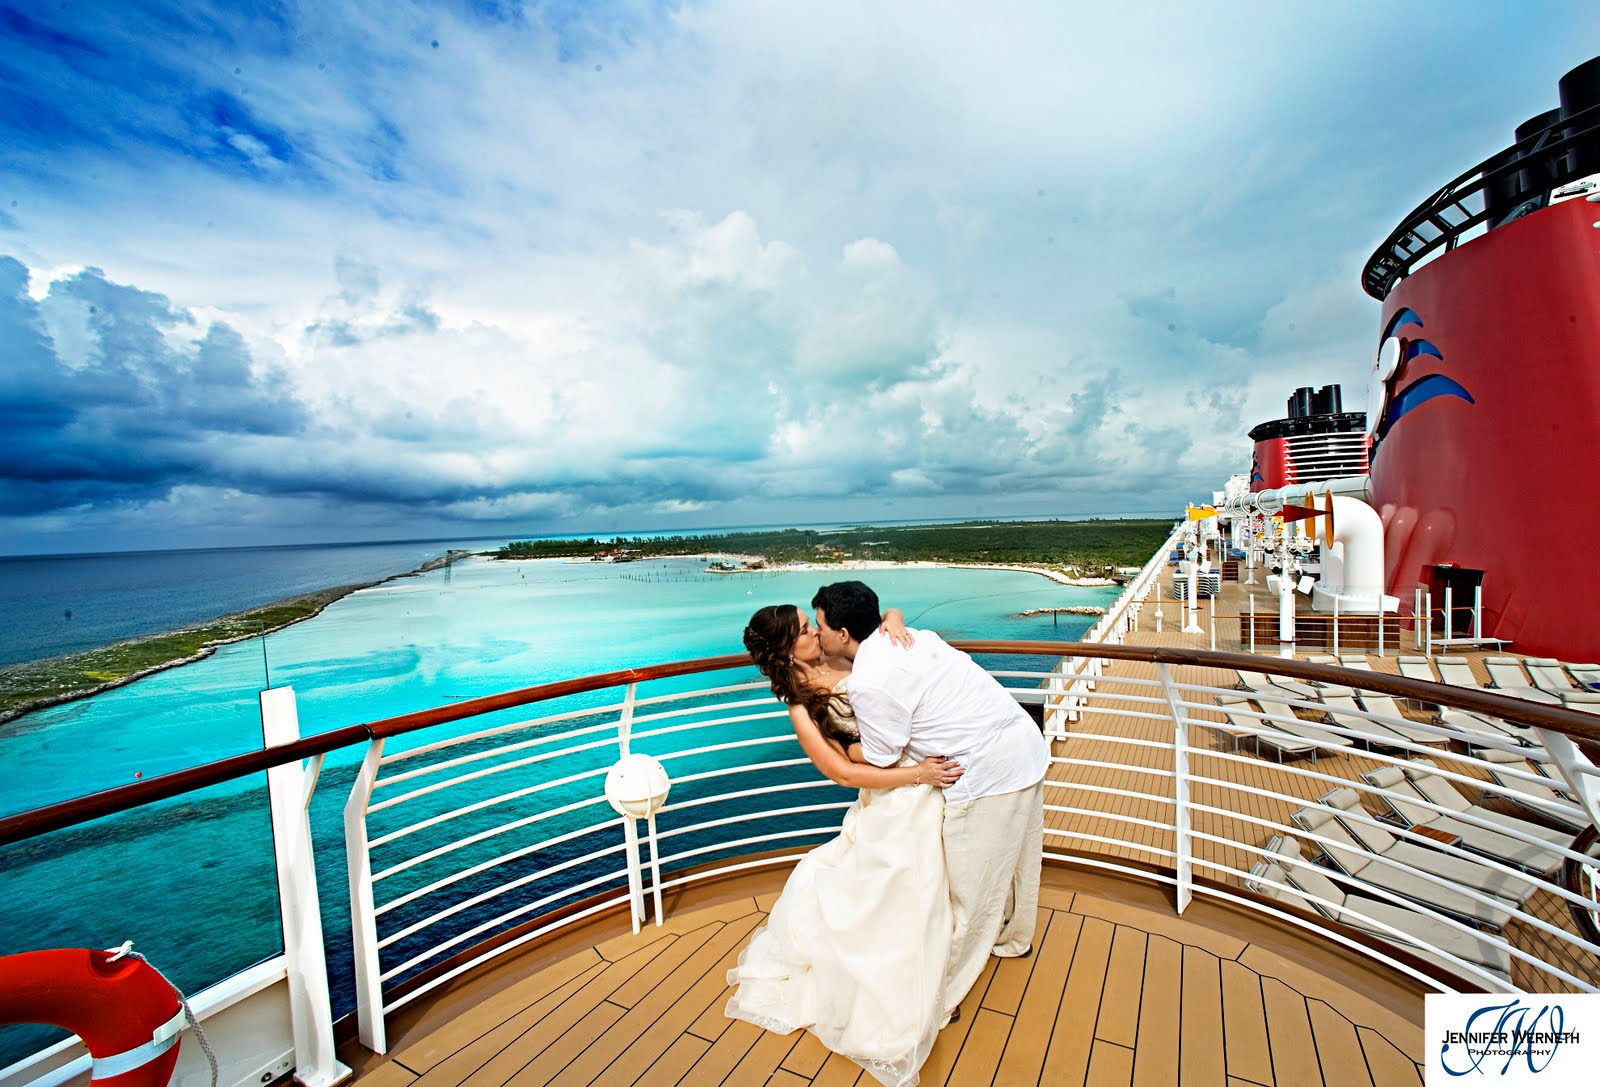 rachael georges disney cruise wedding on disney dream wedding photography - Cruise Ship Photographer